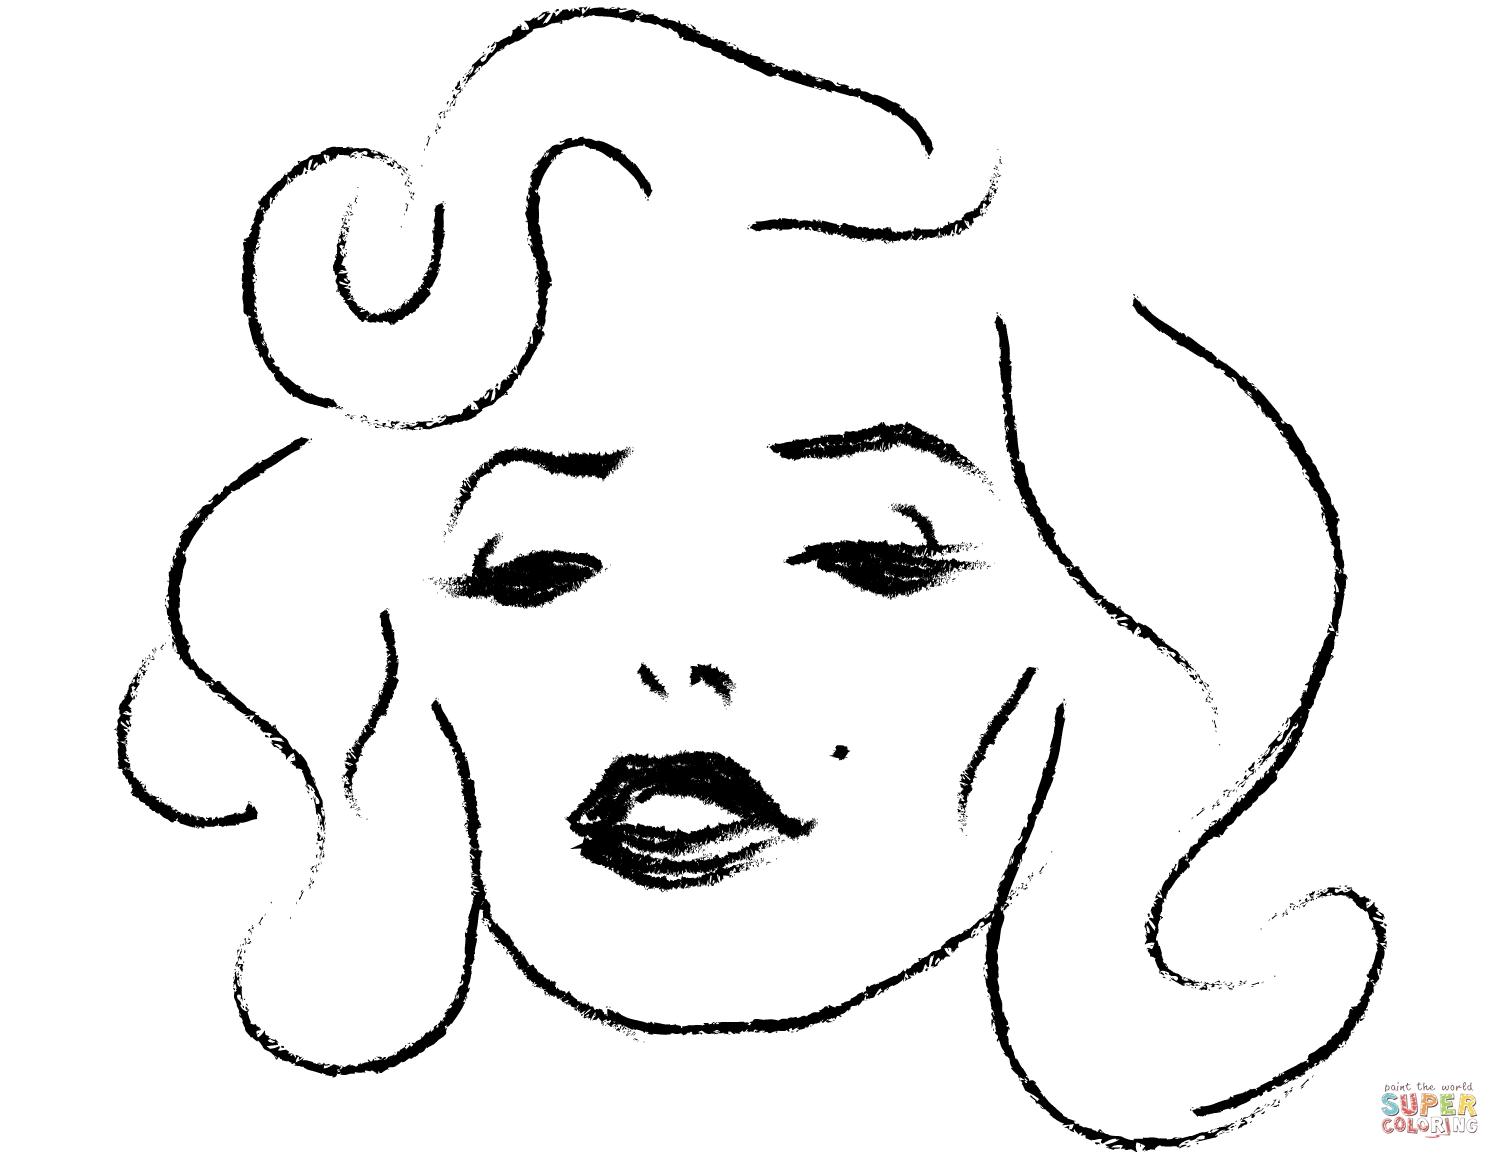 marilyn monroe coloring pages - marilyn monroe portrait